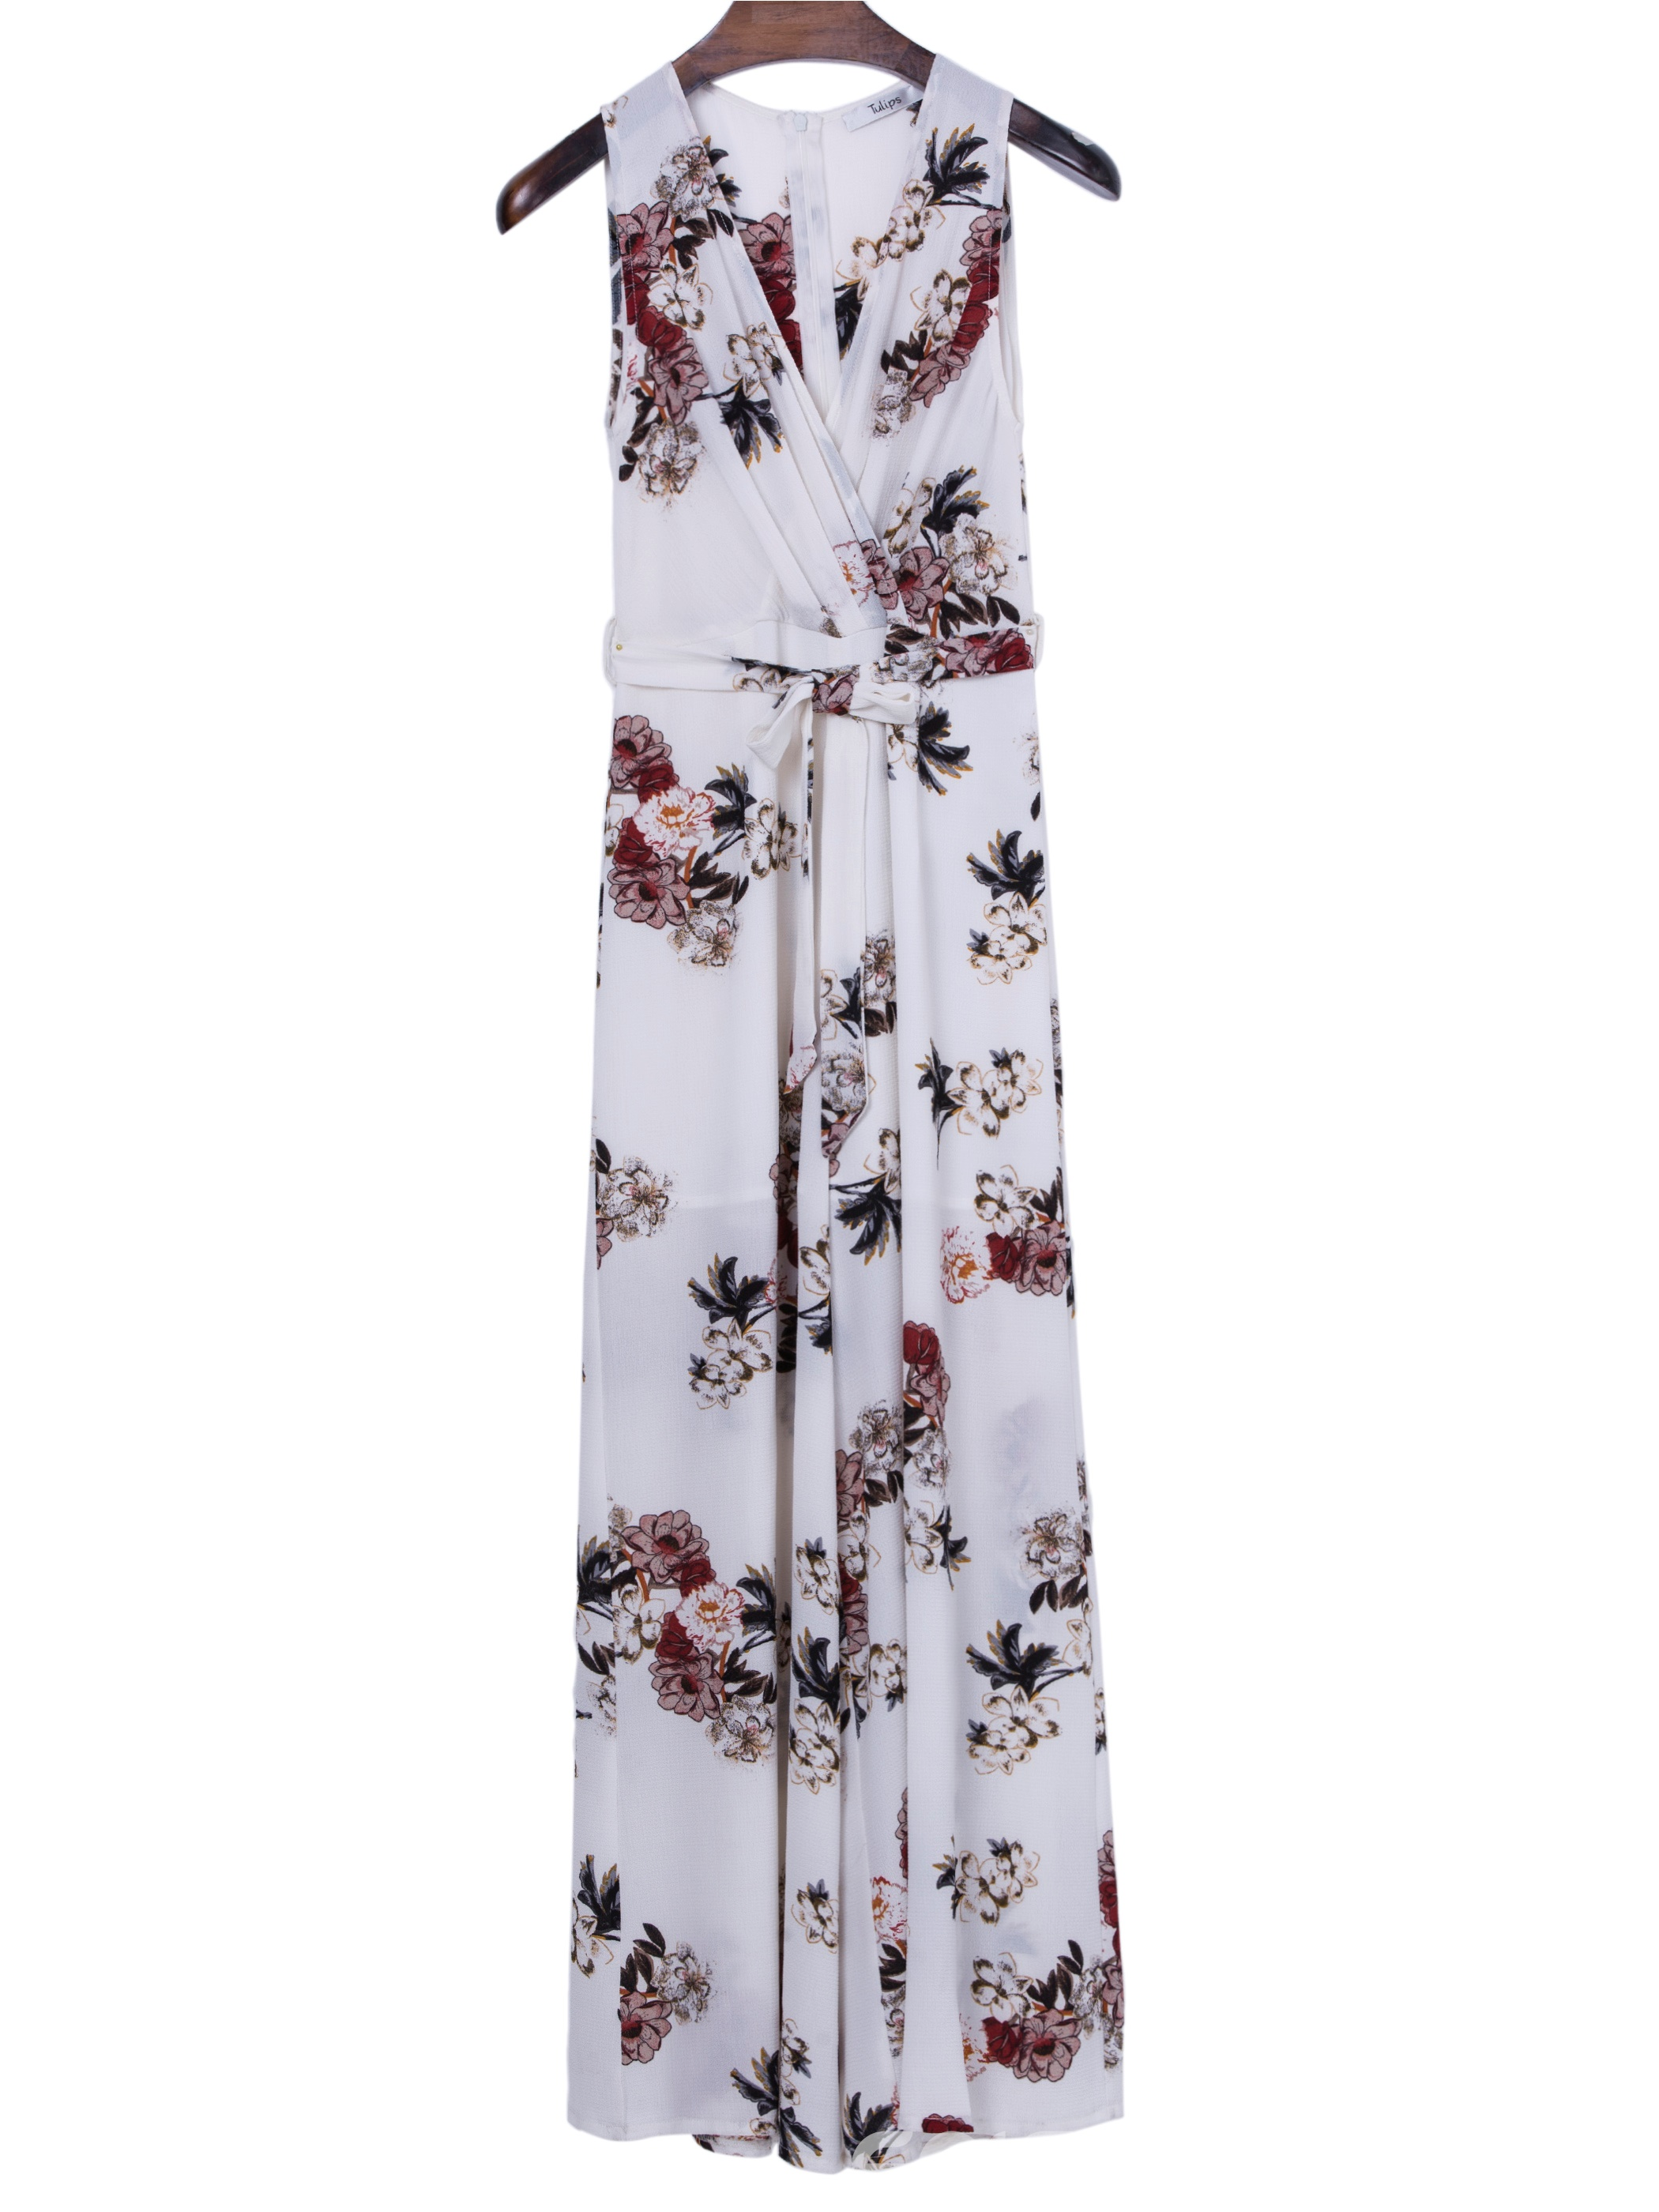 Ericdress Bohoartist V-Neck Flower Print Sleeveless Maxi Dress